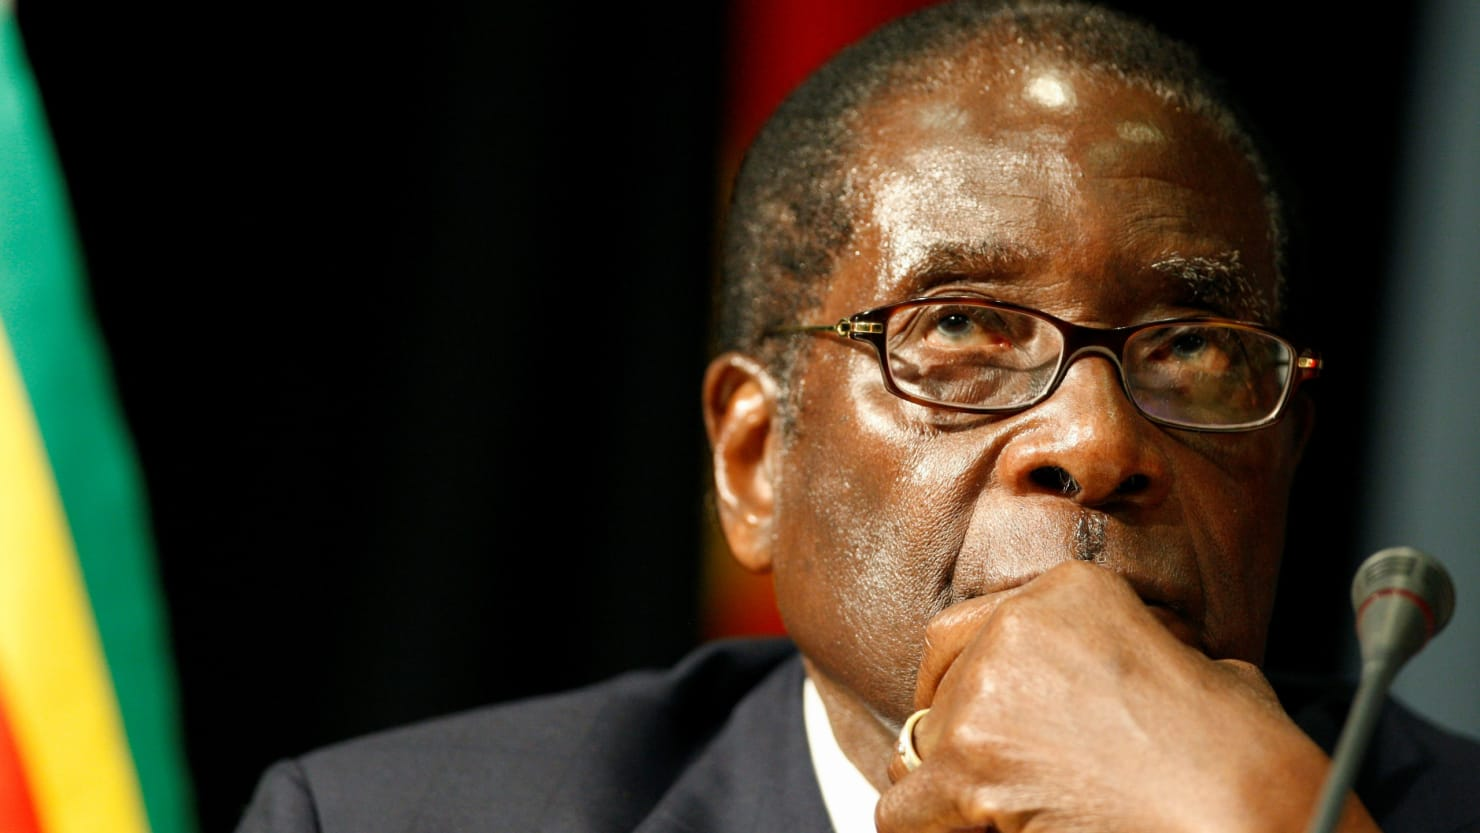 In Zimbabwe, the cannibal Mugabe is being overthrown (photo)